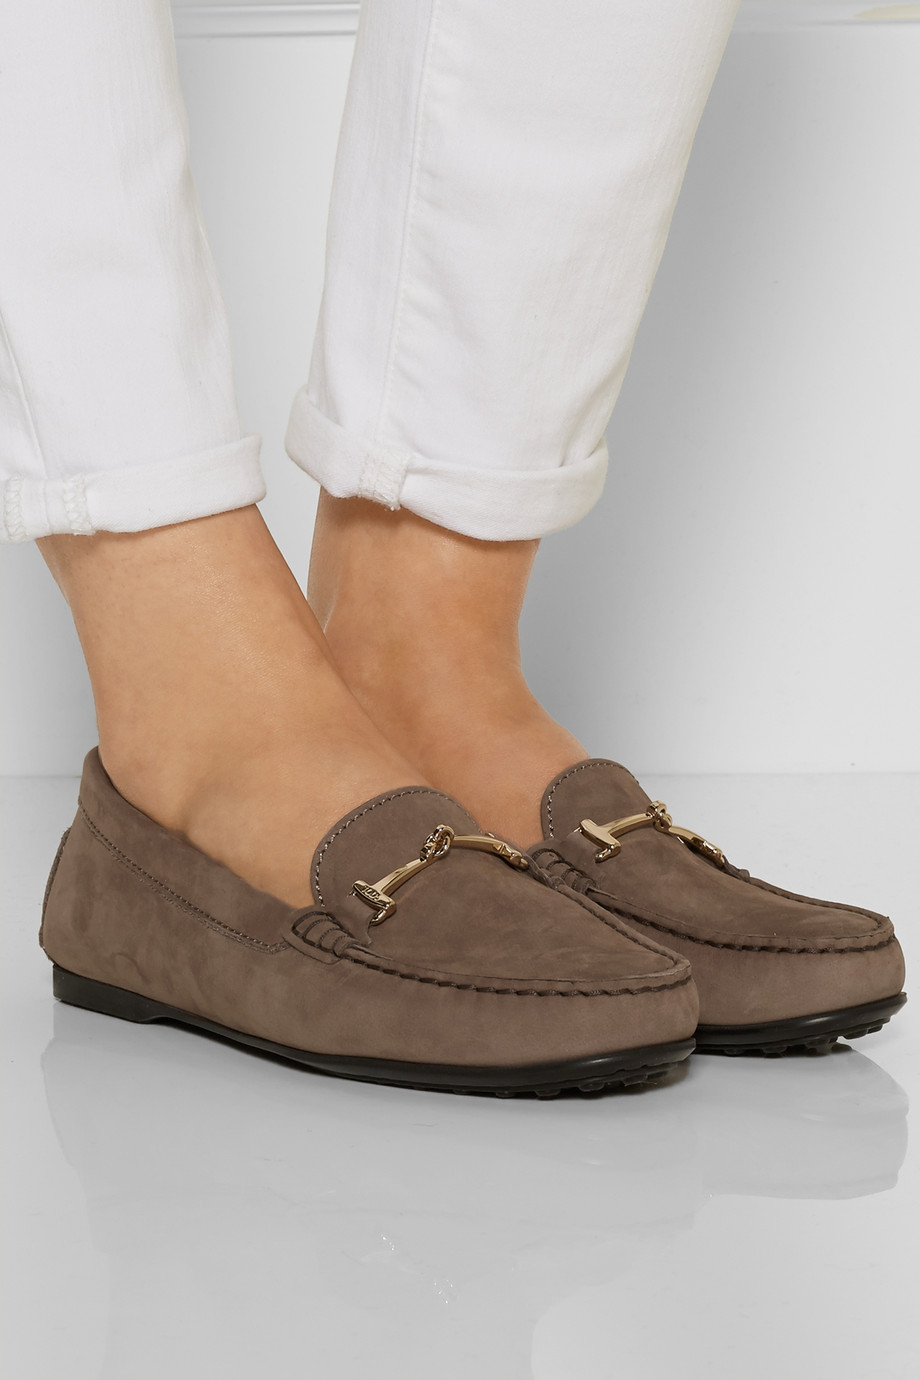 f61fbaf0067 Gallery. Previously sold at: NET-A-PORTER · Women's Tods Gommino